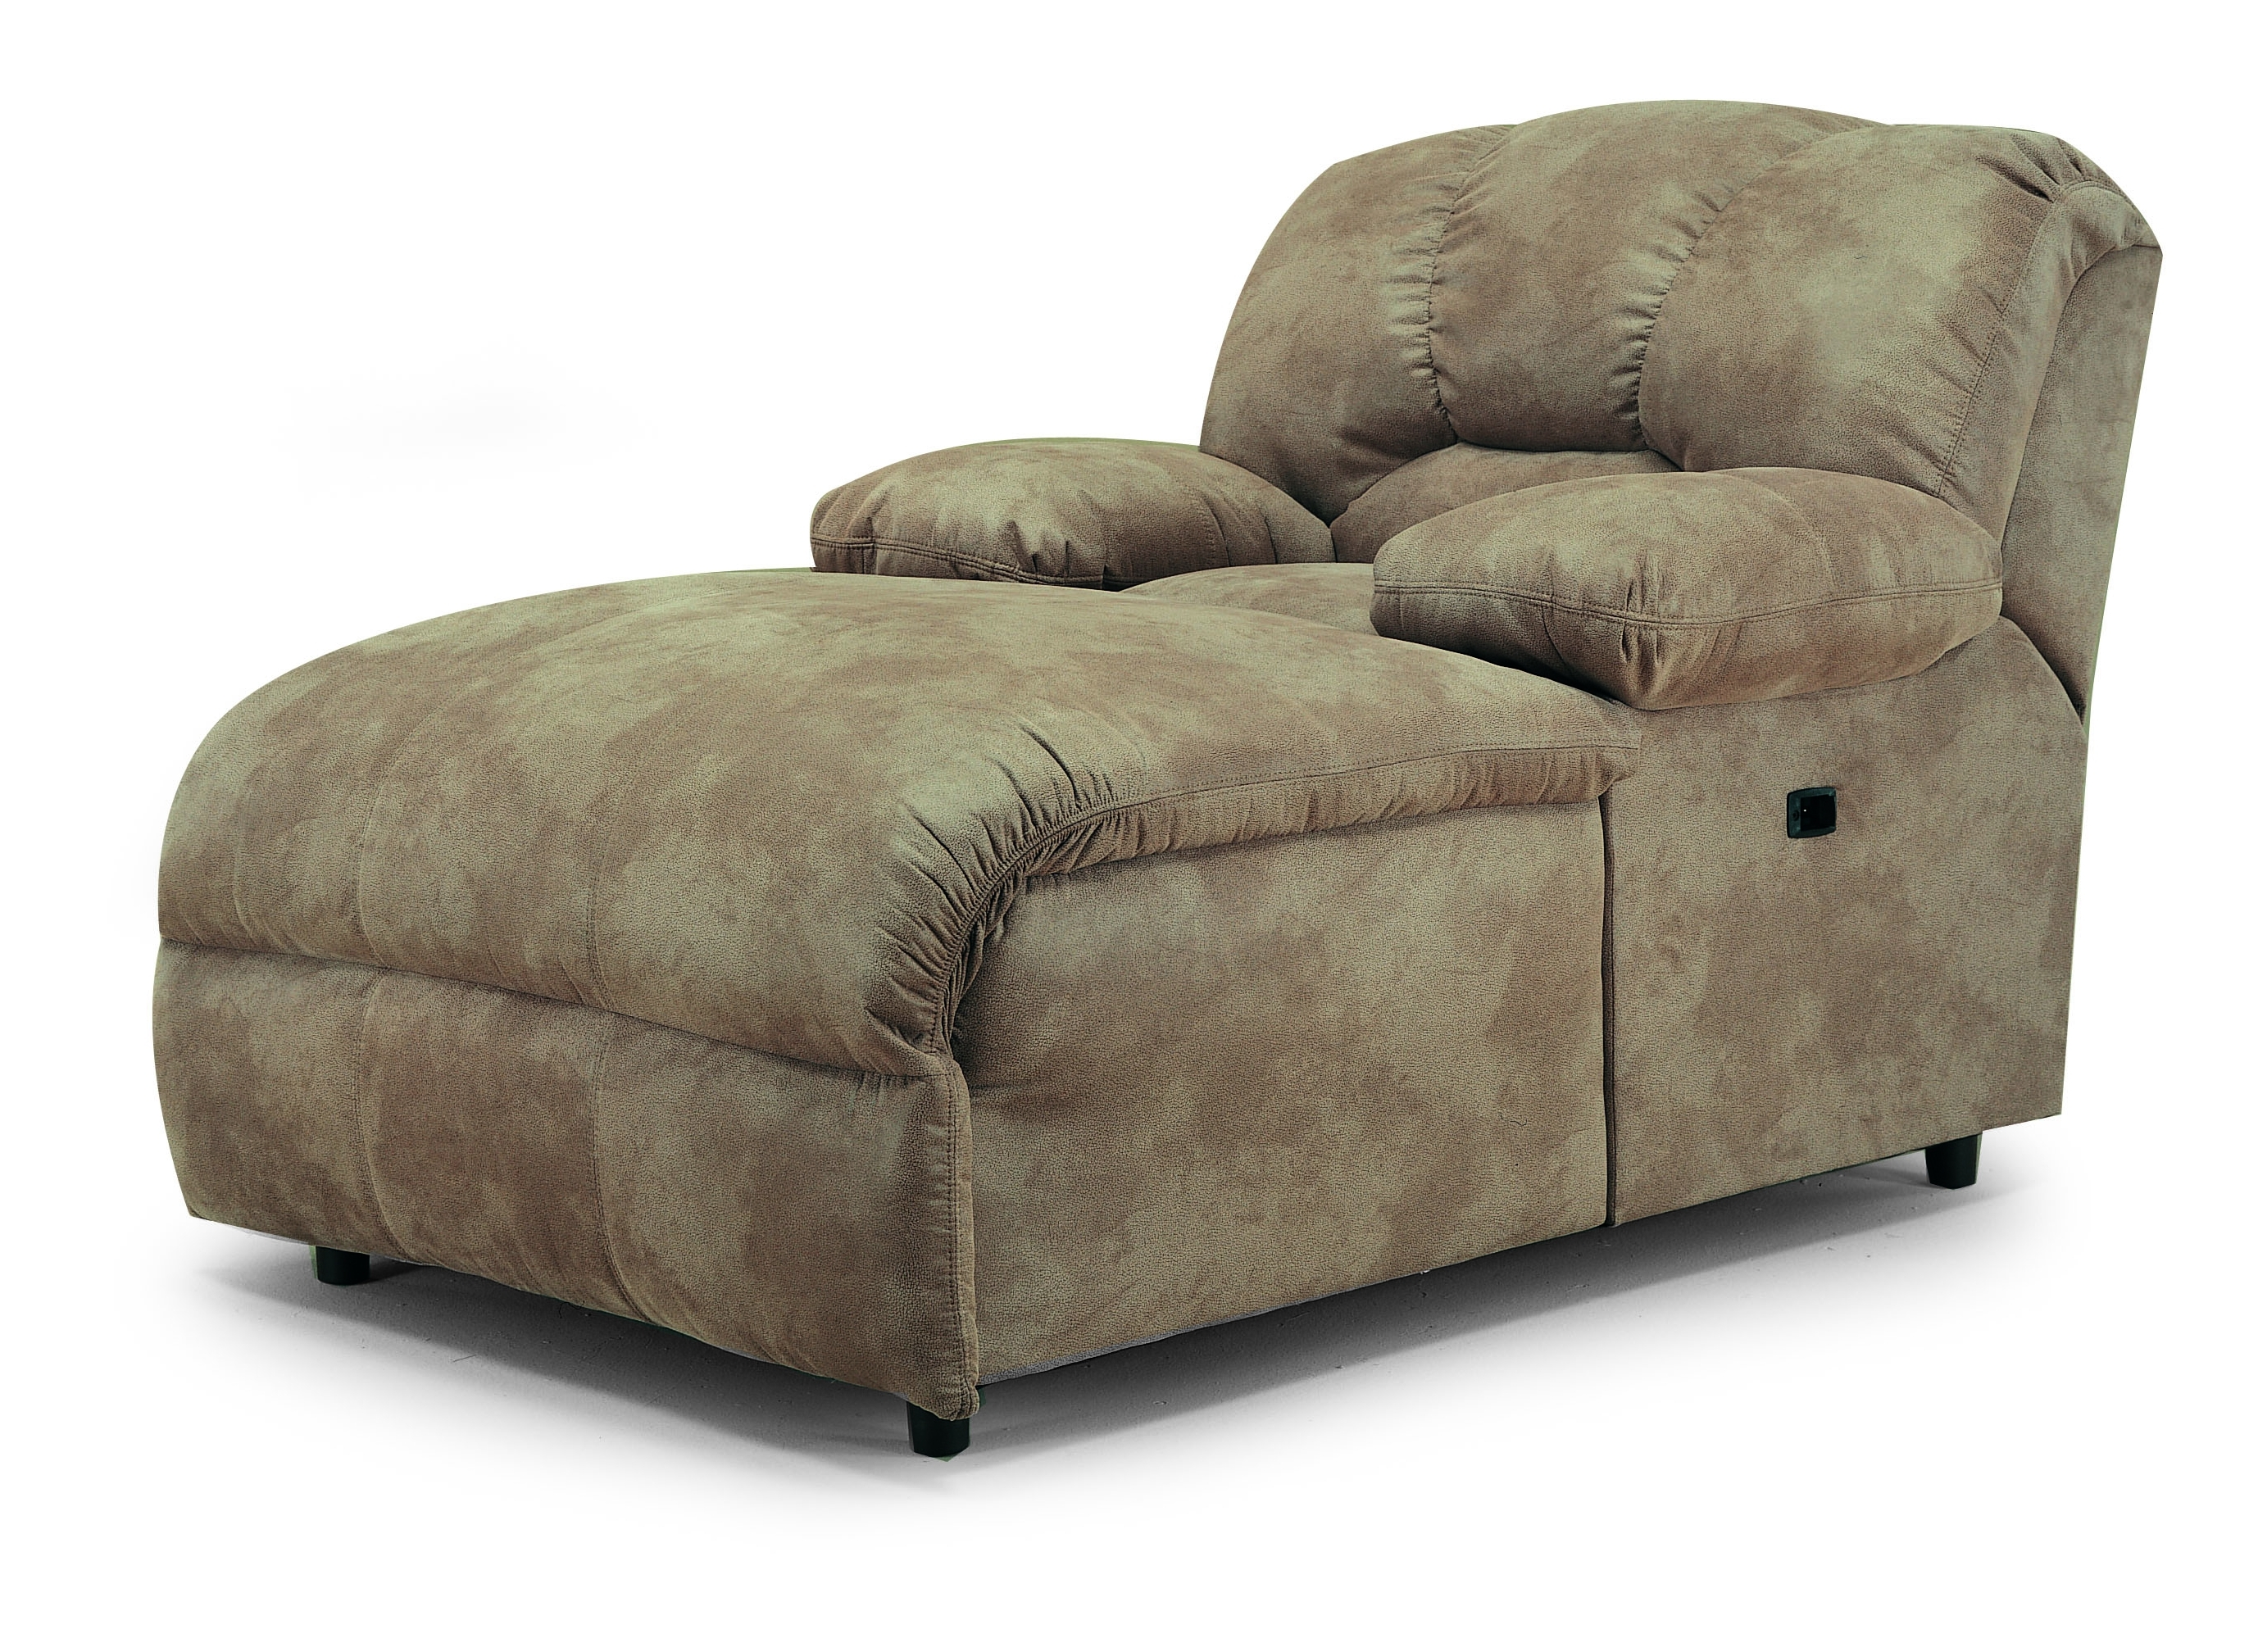 Popular Of Reclining Chaise Lounge With Recliner Chaise Lounge My Pertaining To Favorite Reclining Chaise Lounge Chairs (View 5 of 15)